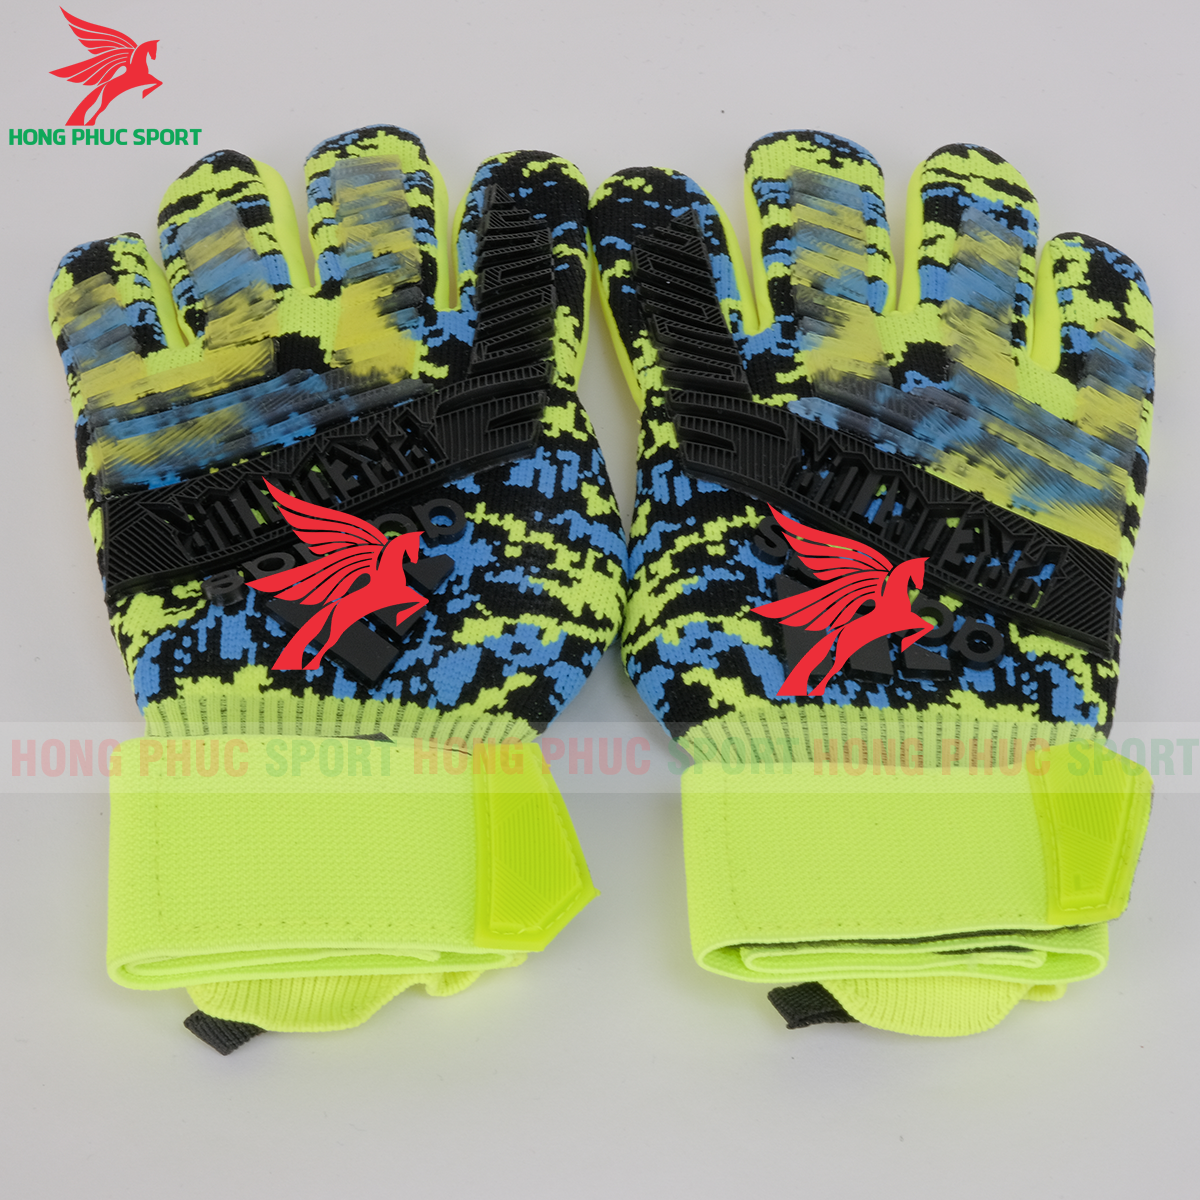 https://cdn.hongphucsport.com/unsafe/s4.shopbay.vn/files/285/gang-tay-thu-mon-adidas-predator-mau-xanh-chuoi-5f7c3d73168f3.png